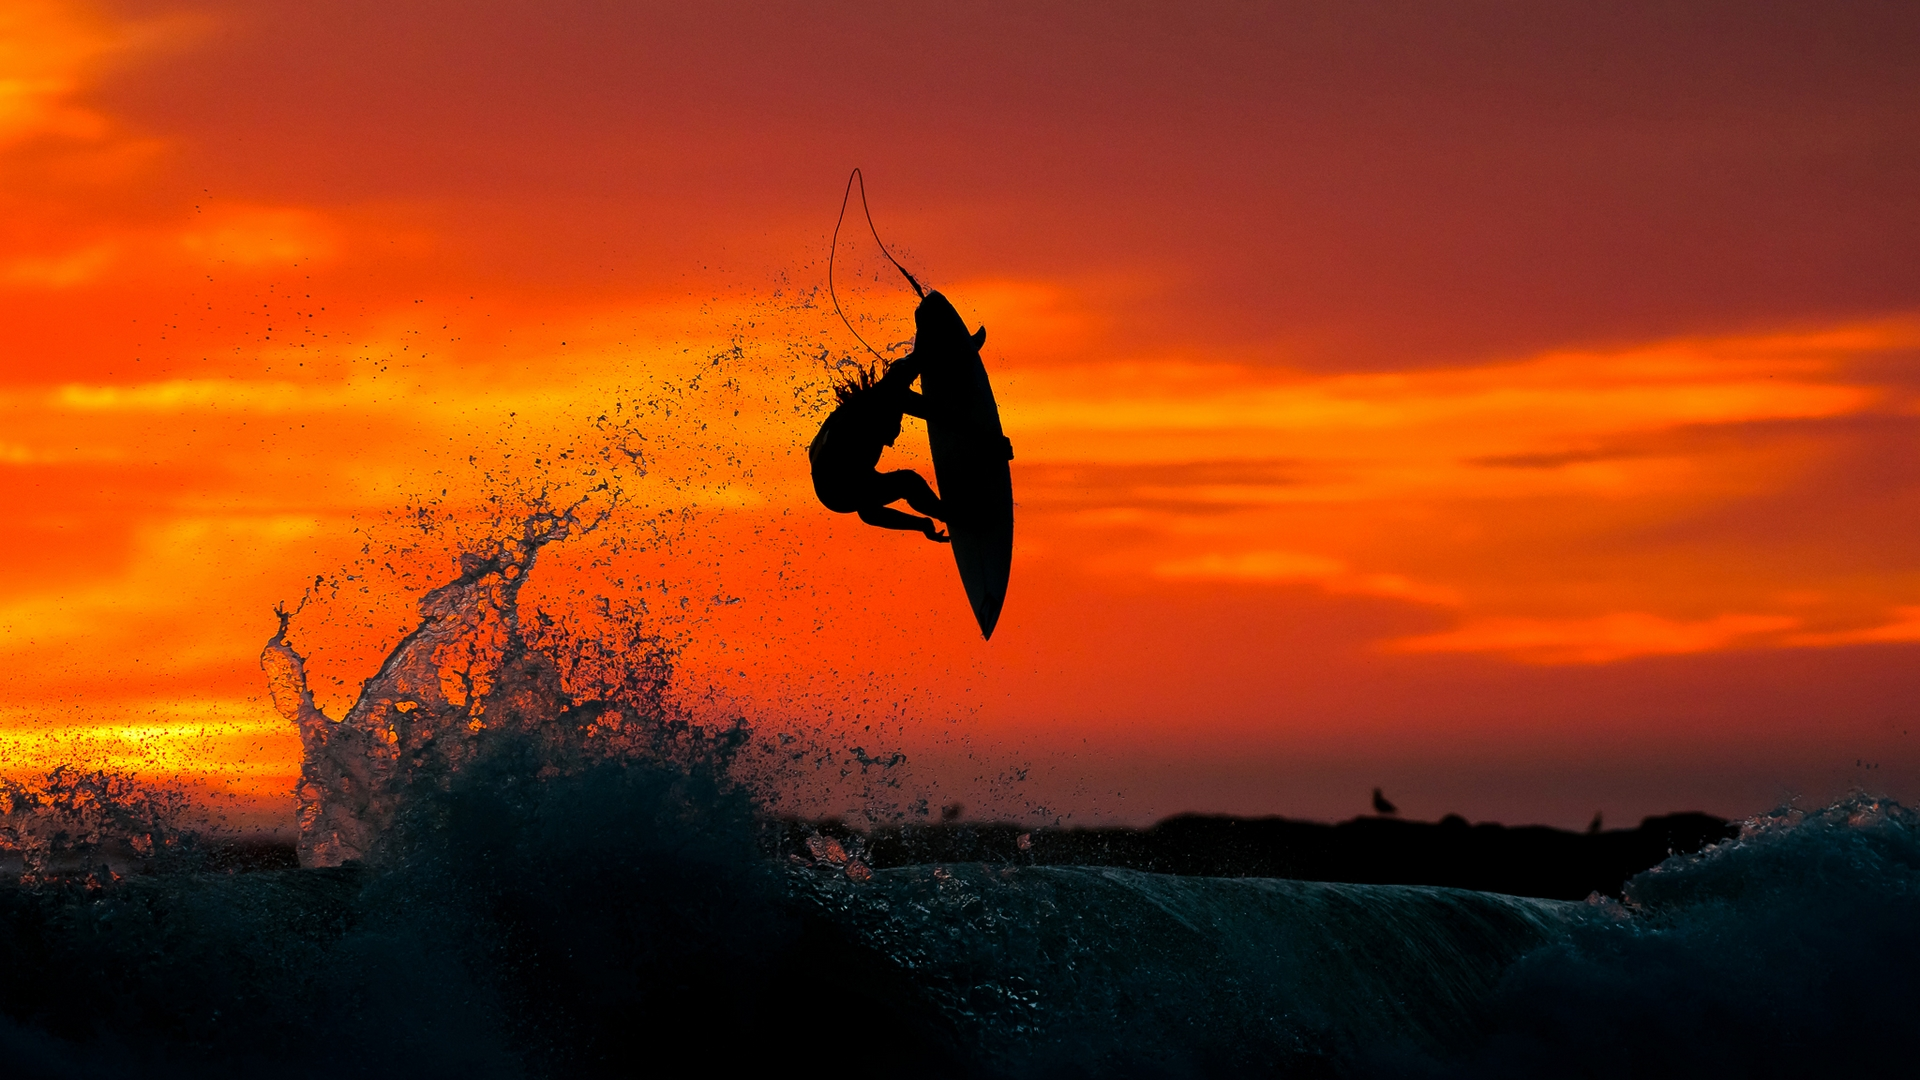 surfing wallpaper full hd - photo #37